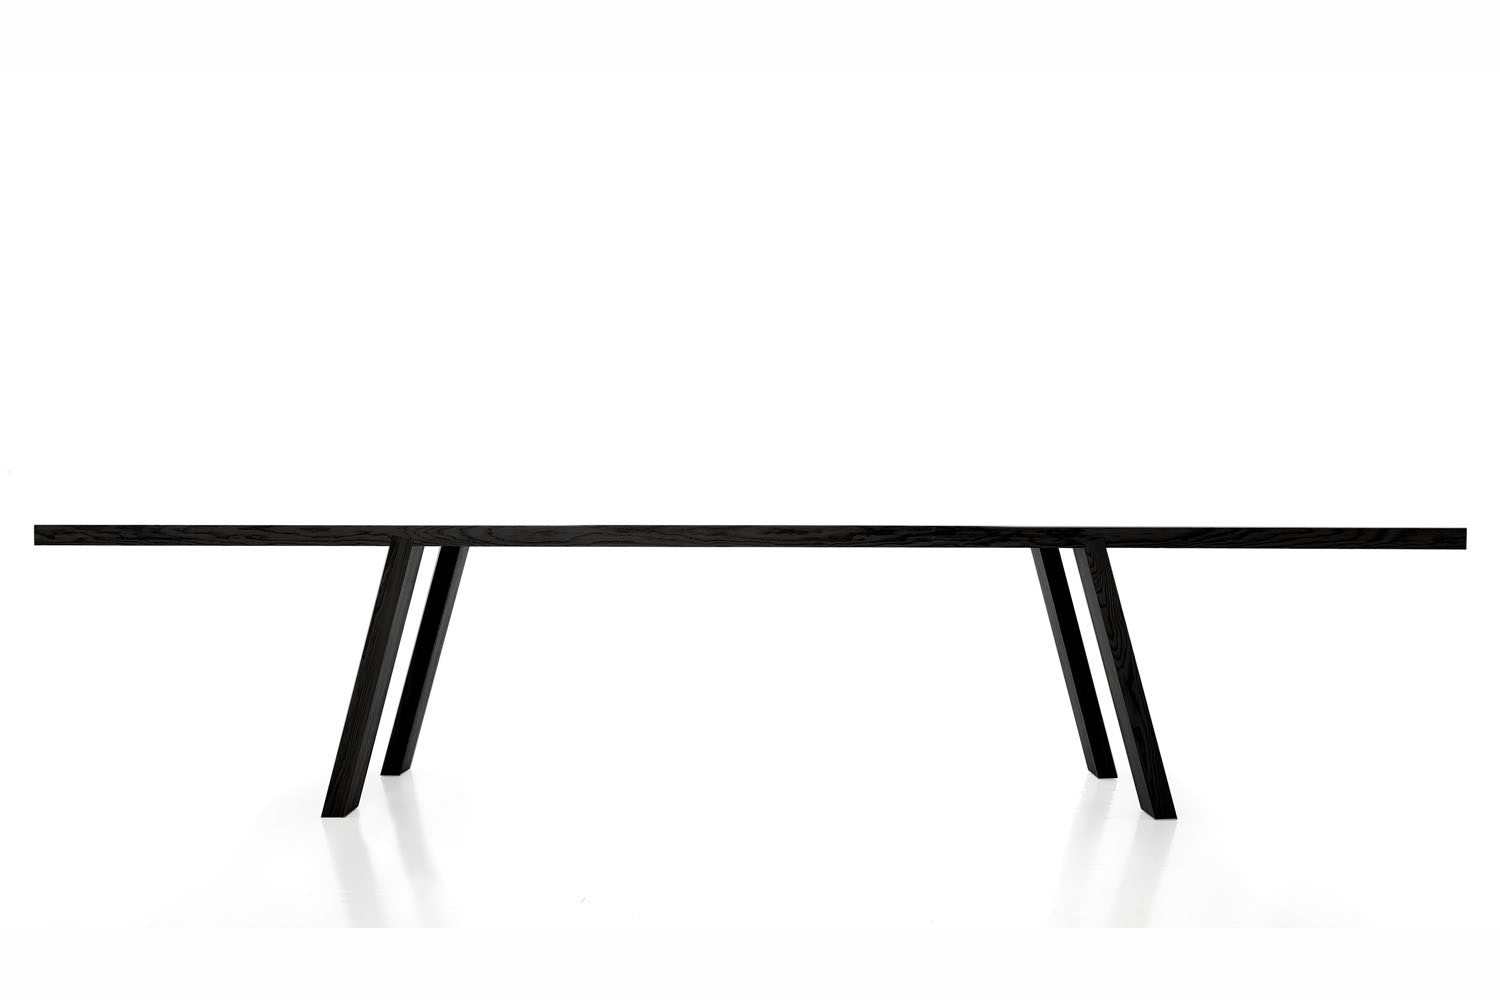 Minimo Small Table by Piero Lissoni for Porro